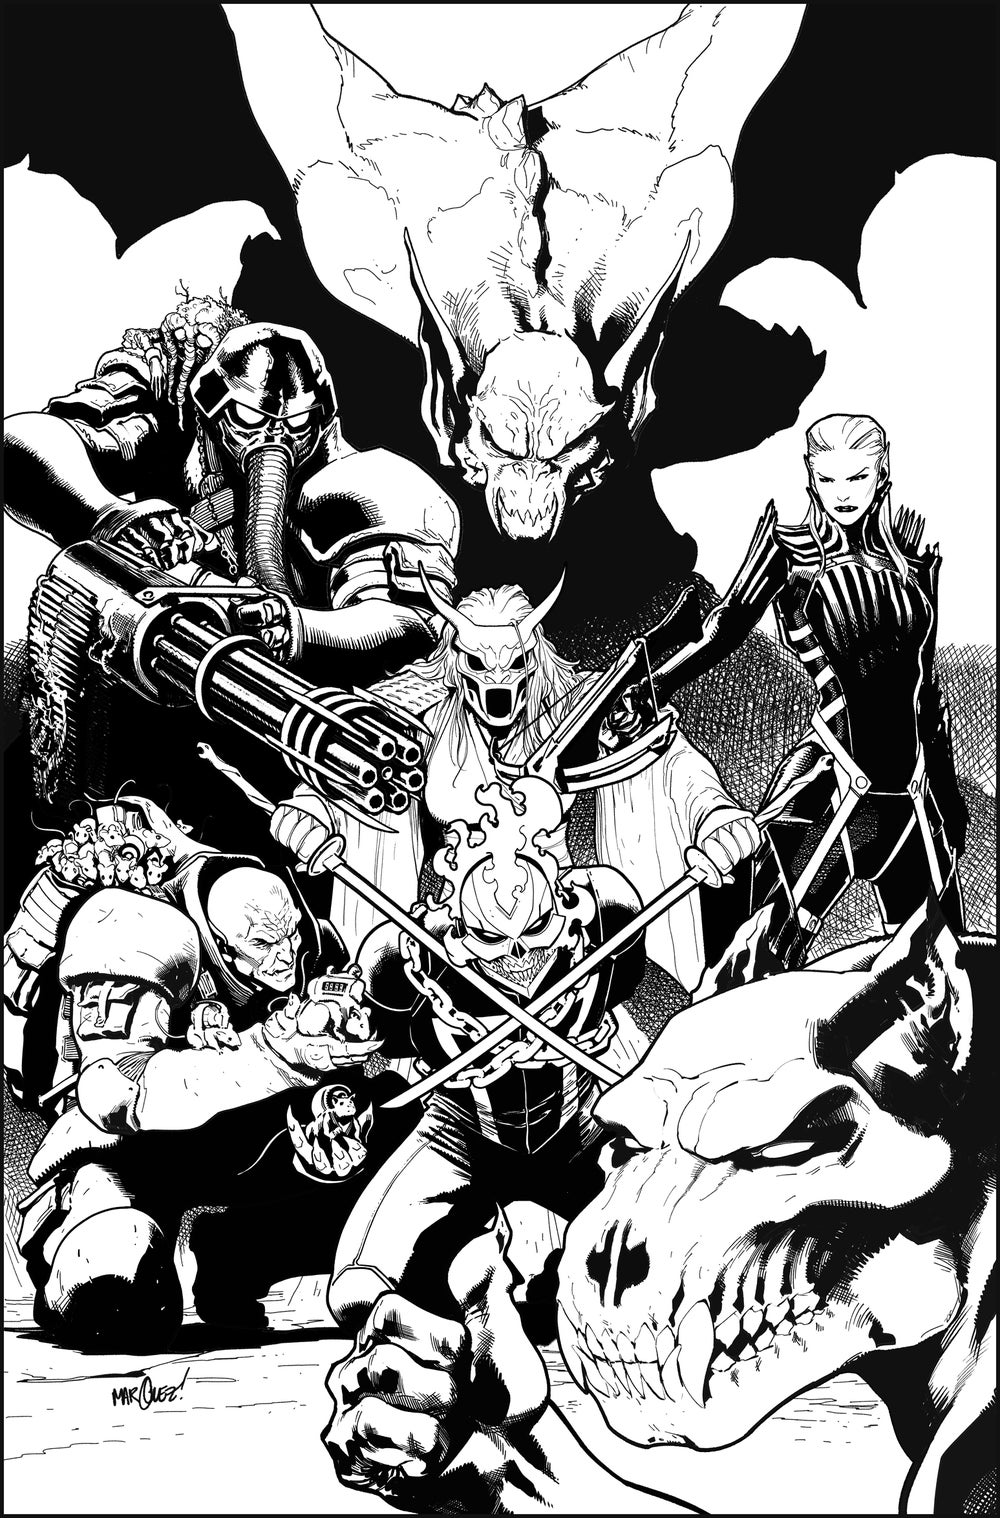 Image of AVENGERS #15 COVER ARTIST'S PROOF